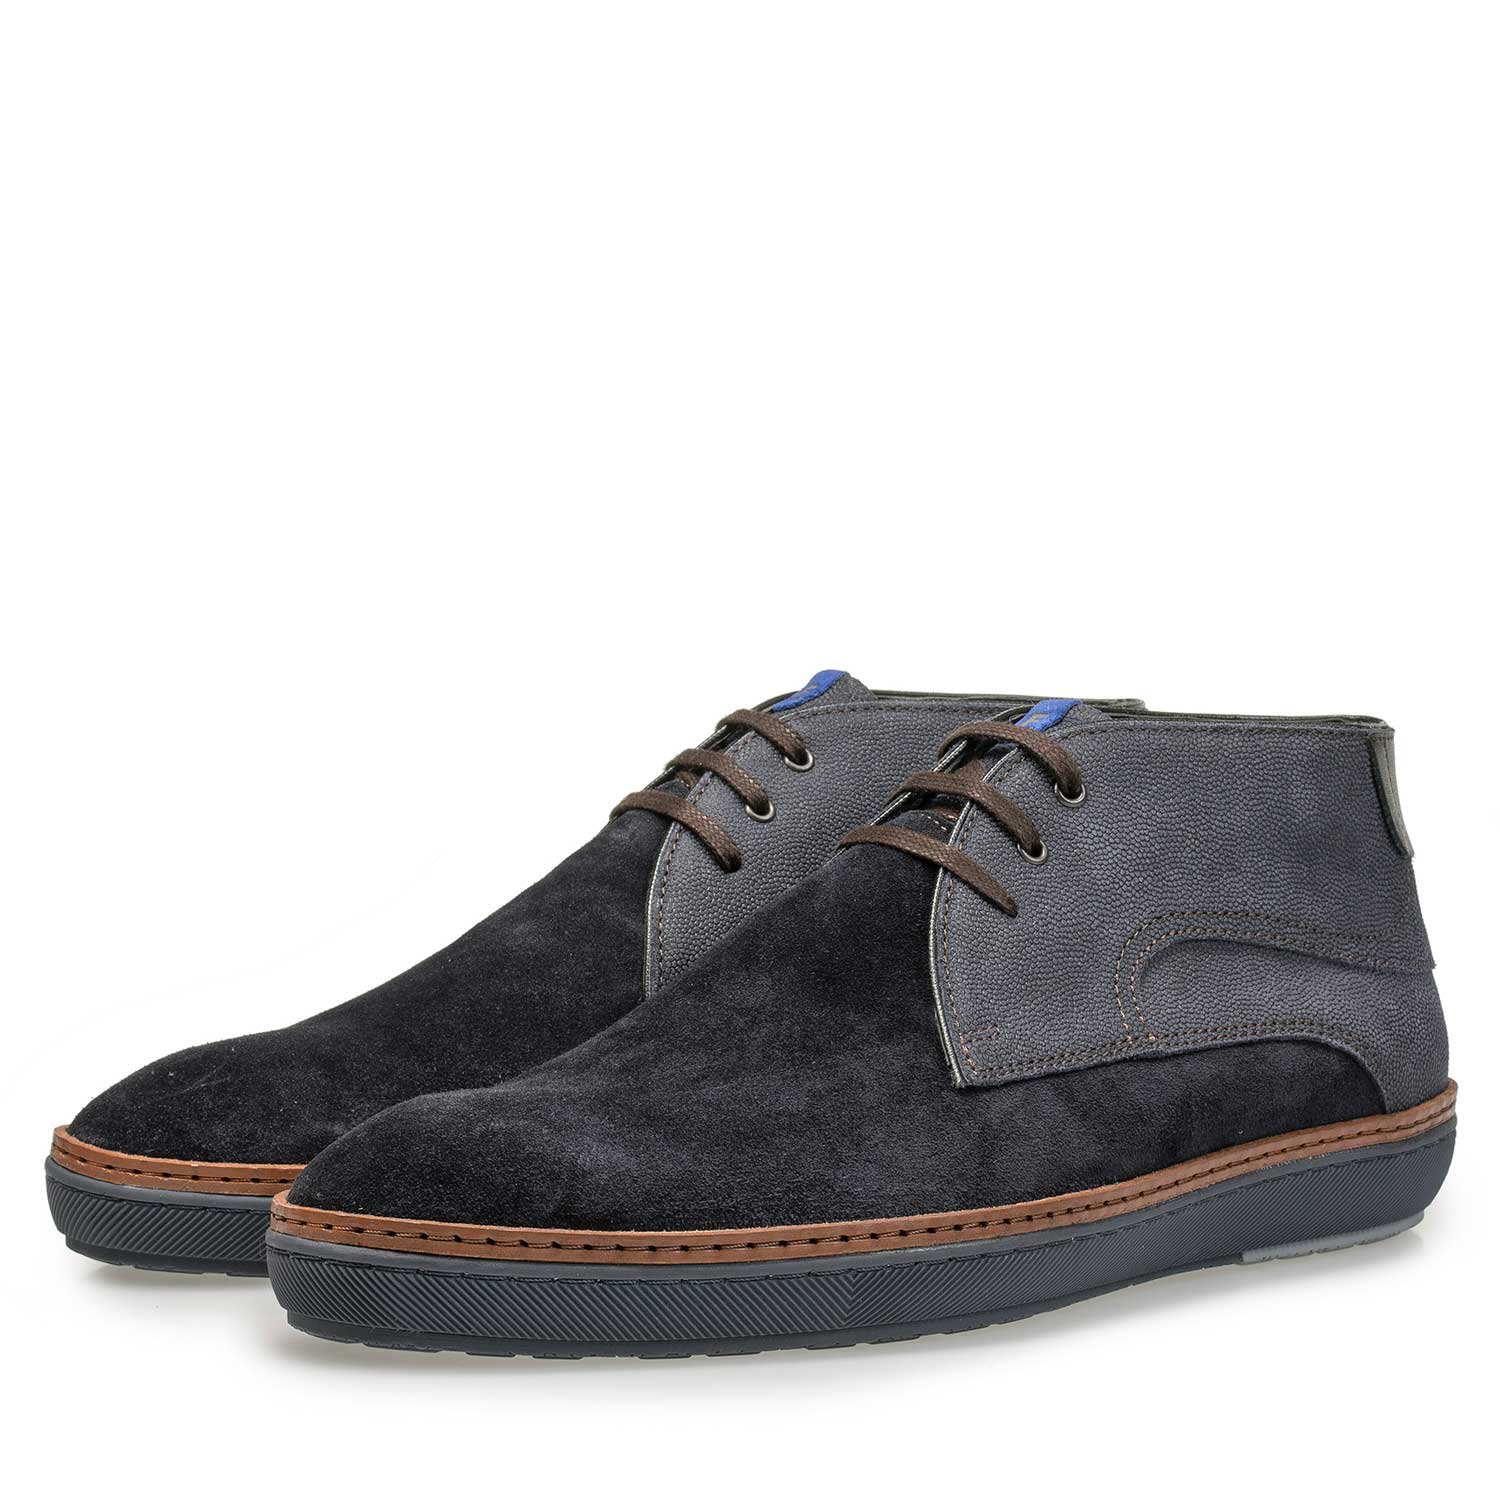 10015/04 - Dark blue calf's suede leather lace boot